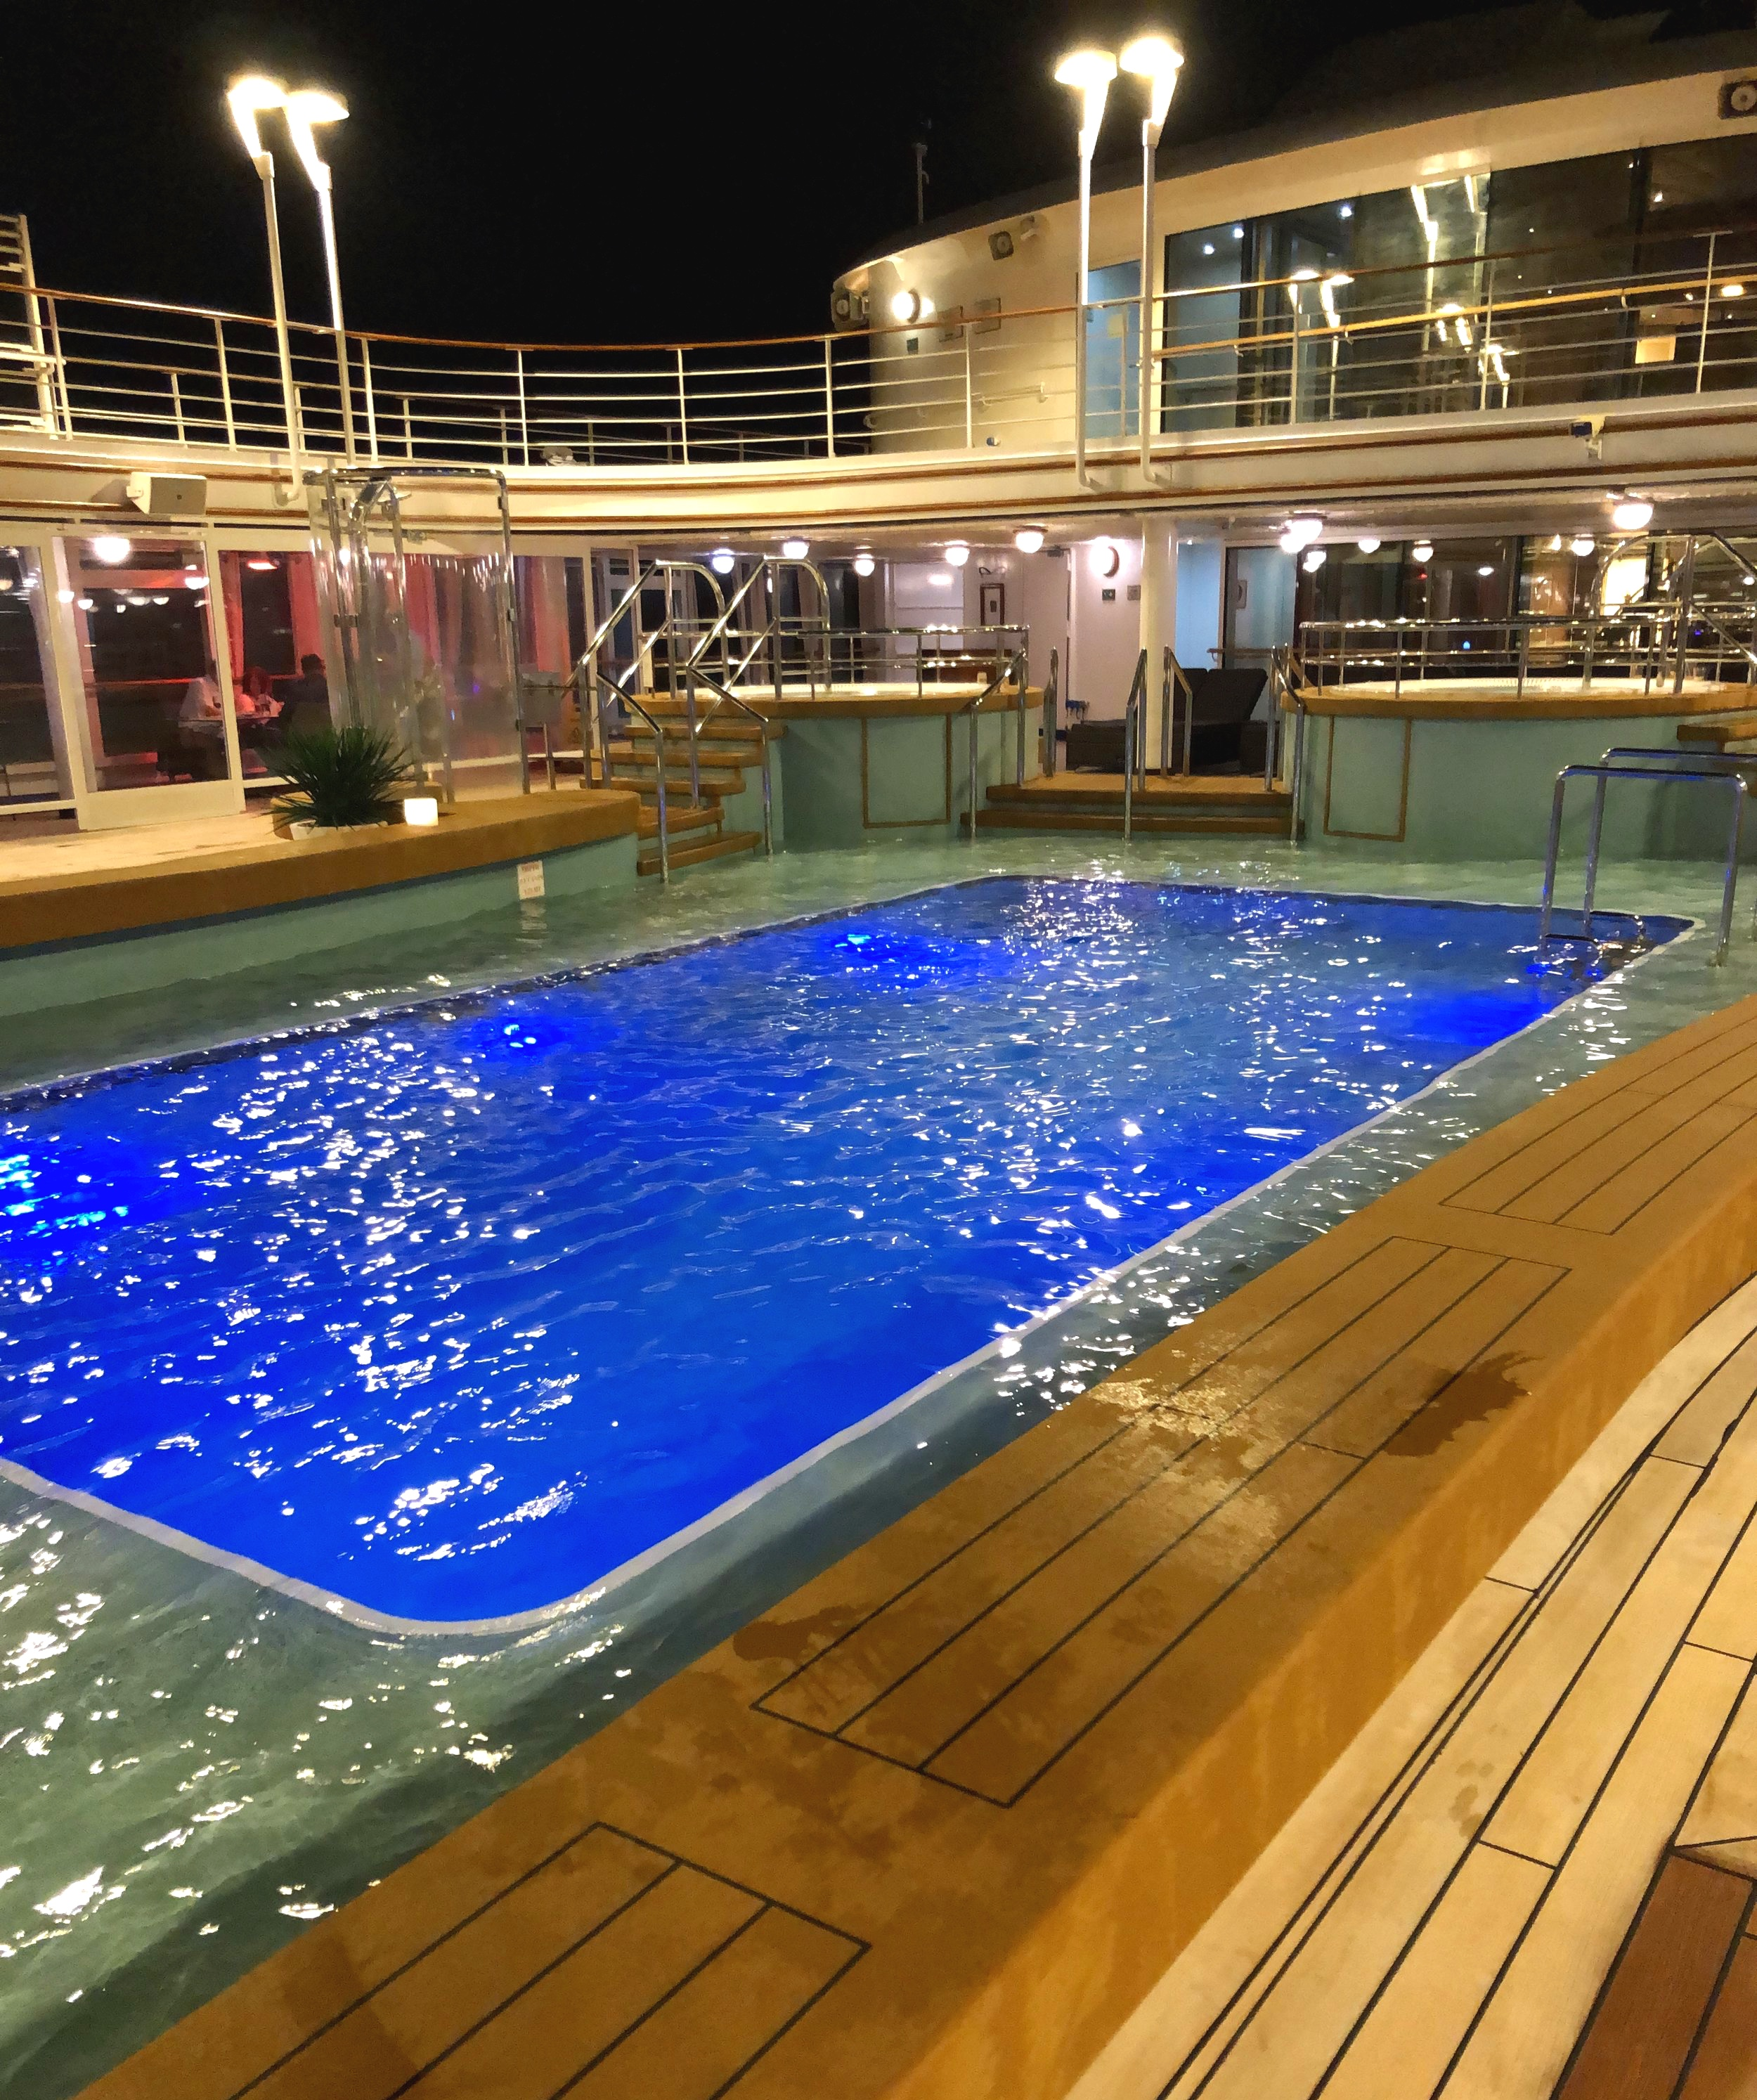 The beautifully lit pool deck at night.